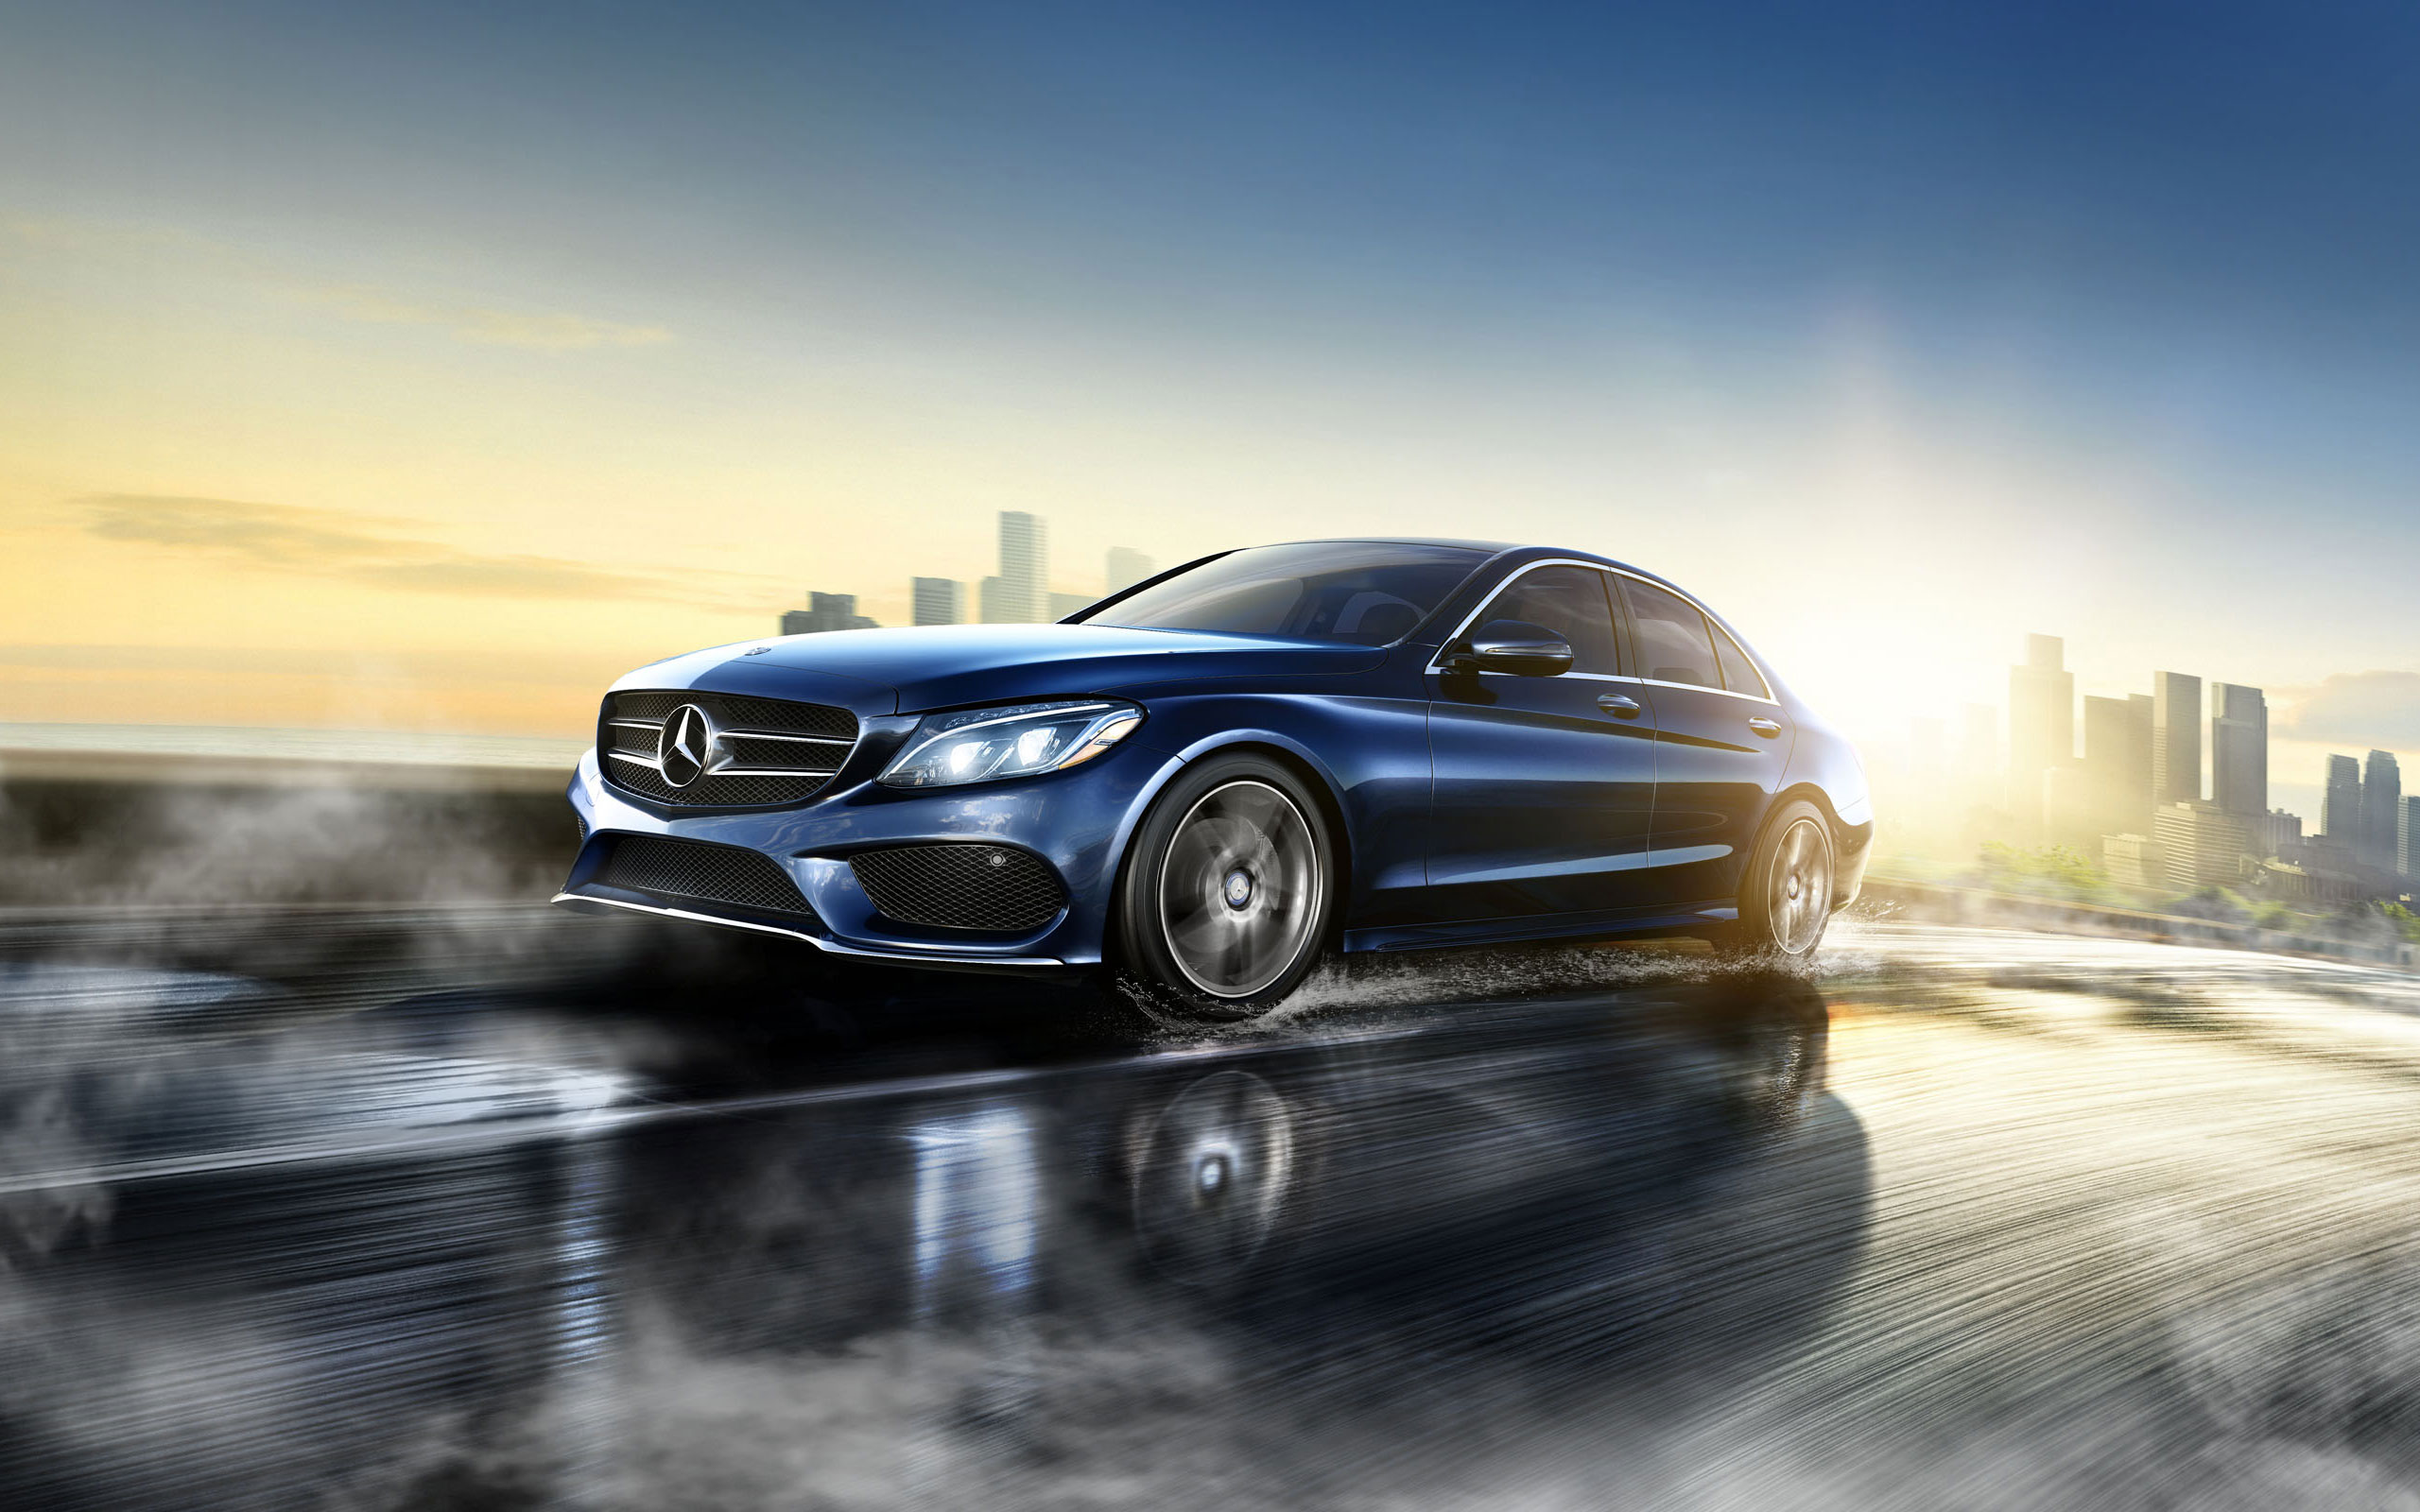 Mercedes benz cars - Search Fast Simple - Mitula